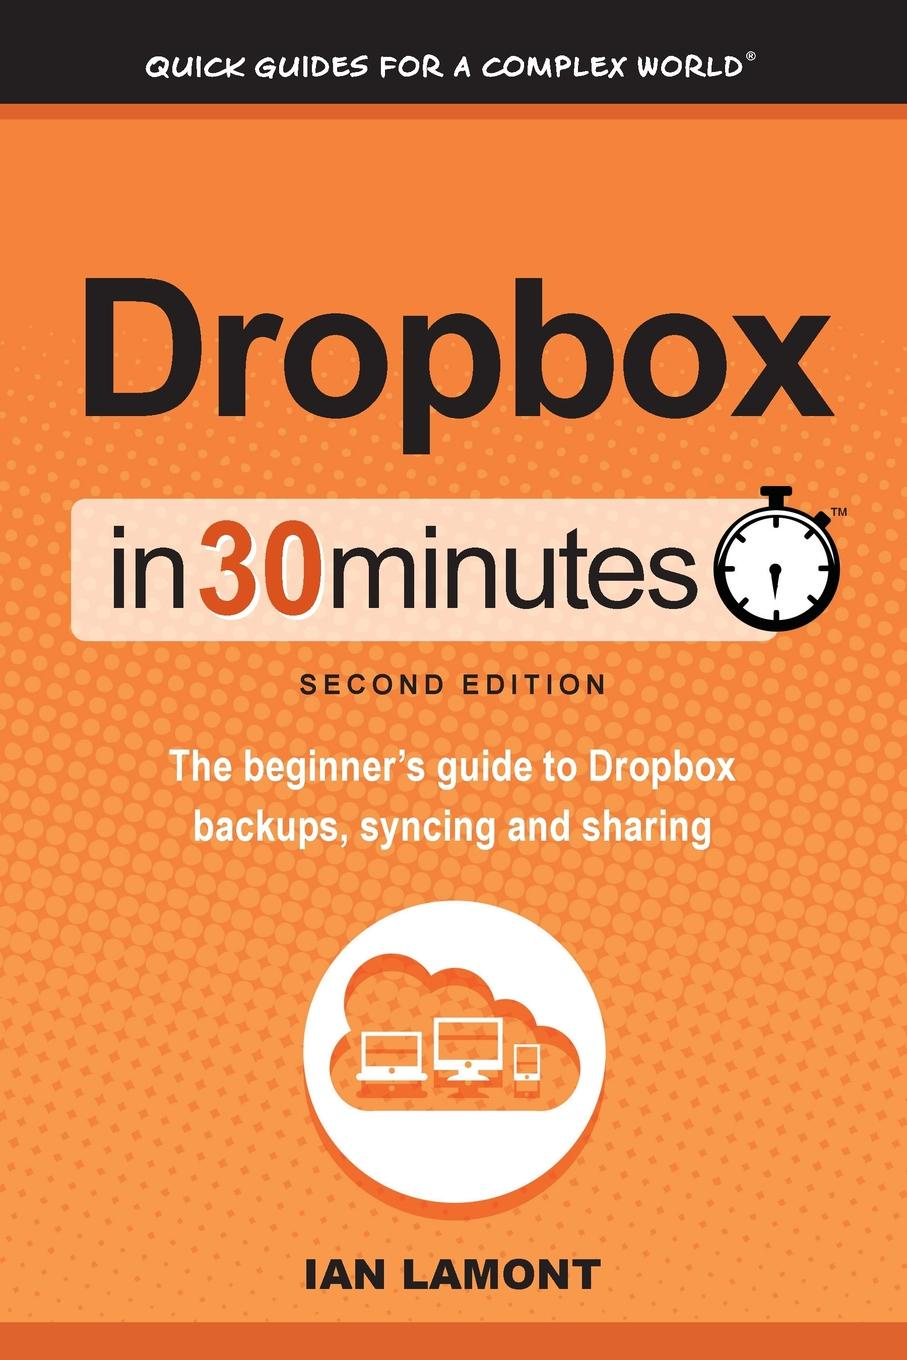 Ian Lamont Dropbox in 30 Minutes, Second Edition. The beginner.s guide to Dropbox backups, syncing, and sharing